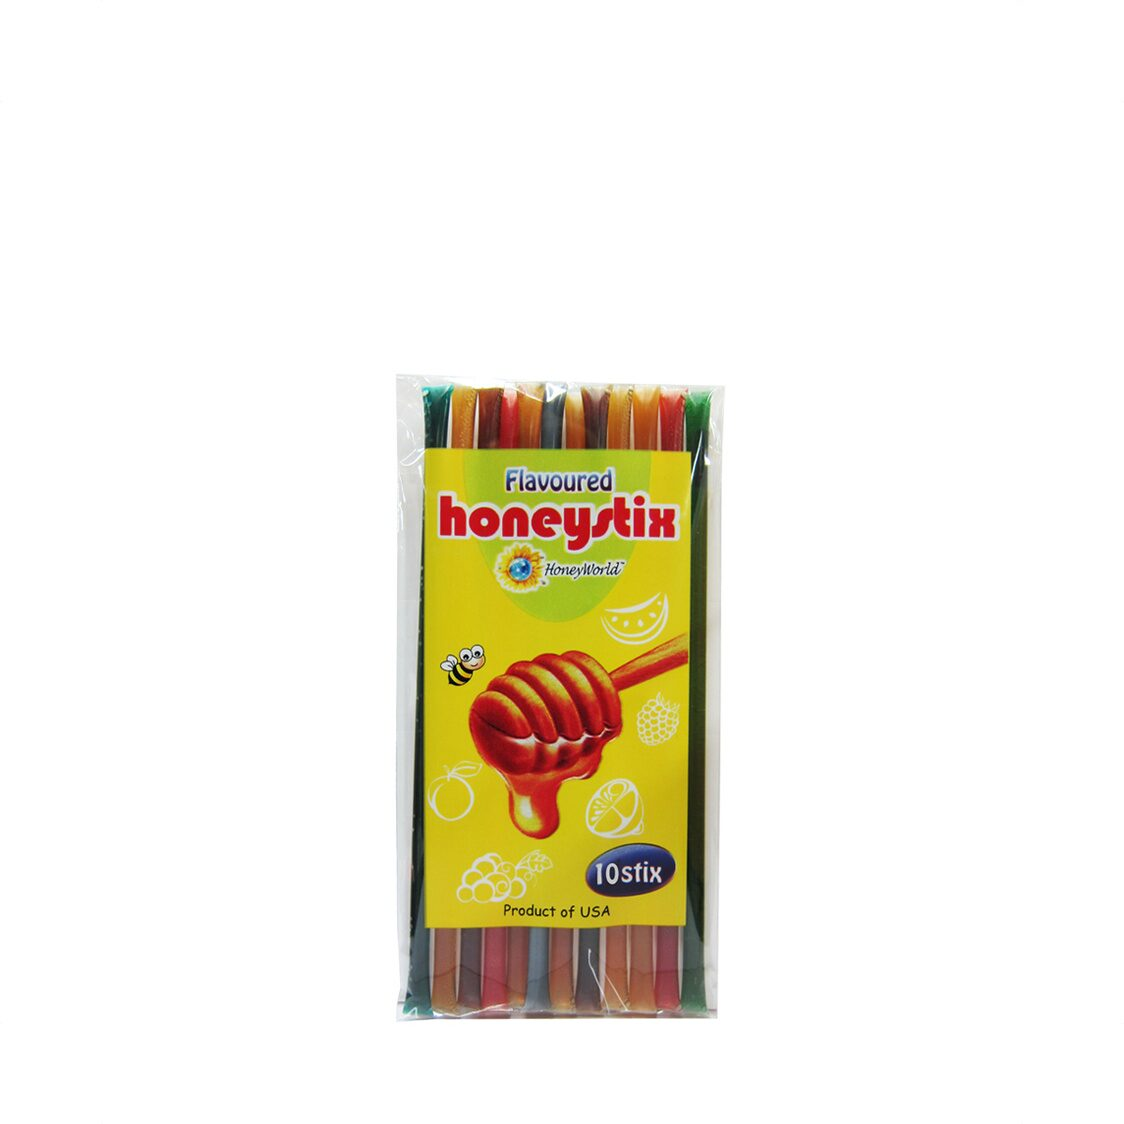 Honey World Honeystix 10stix Flavoured